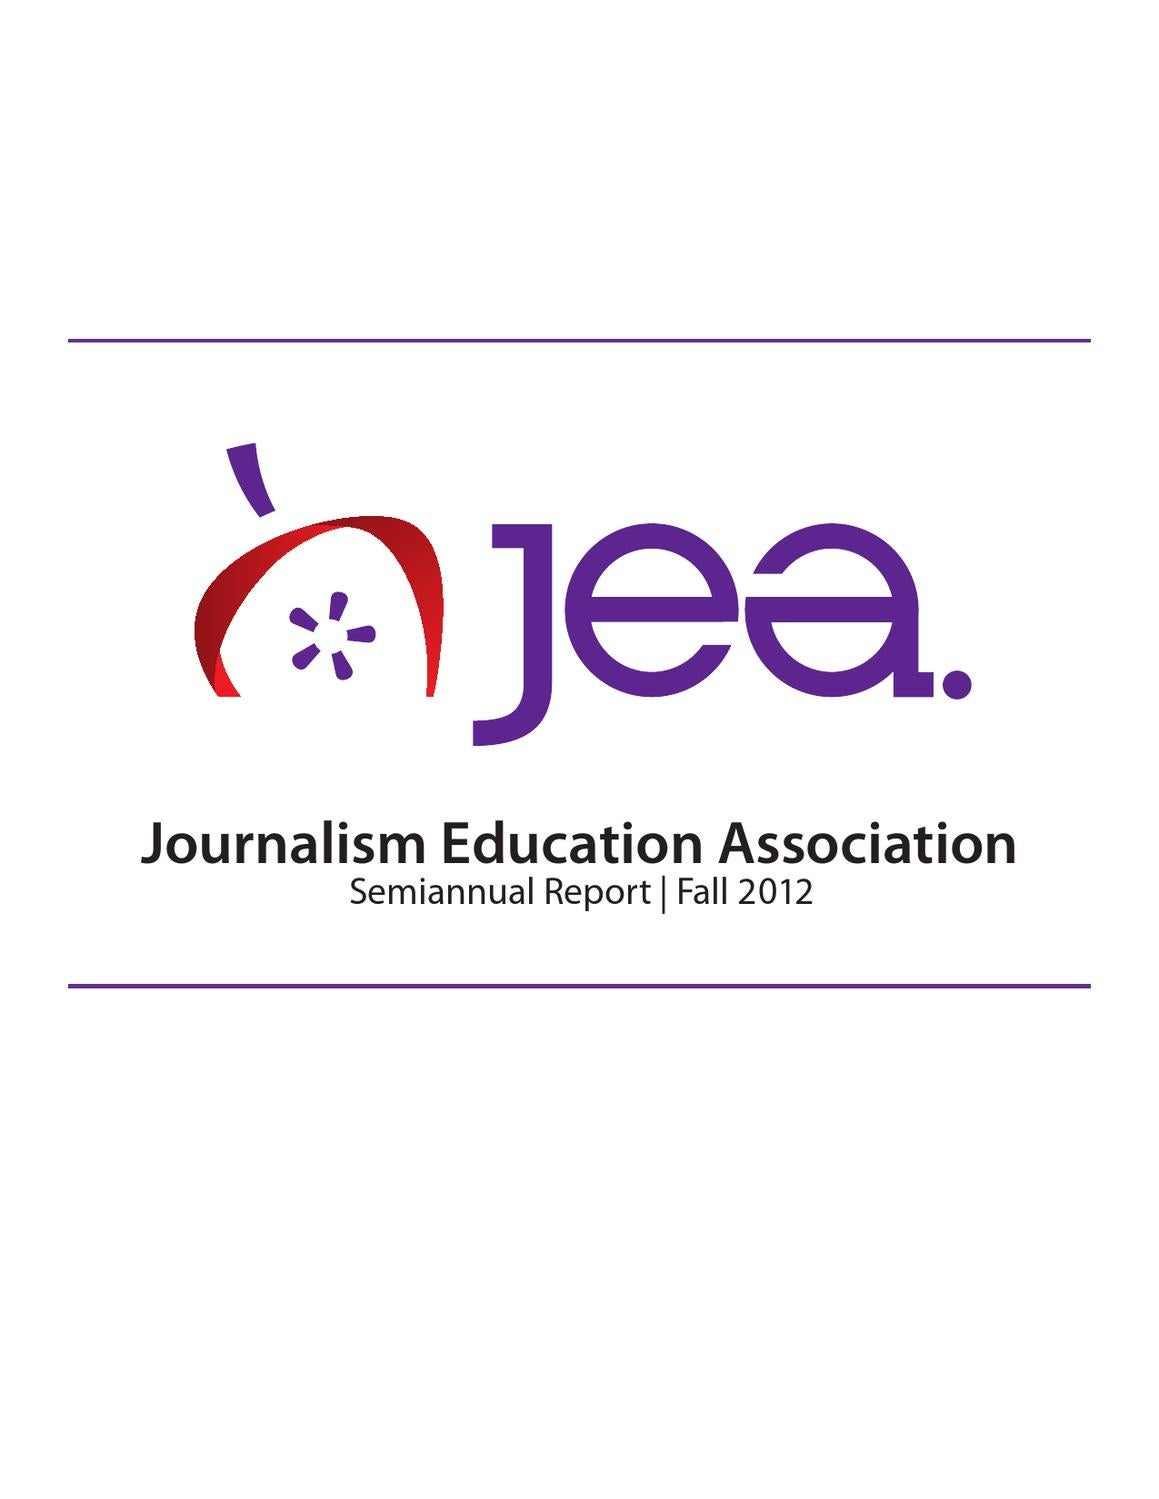 Journalism Education Association Fall 2012 Semiannual Report by